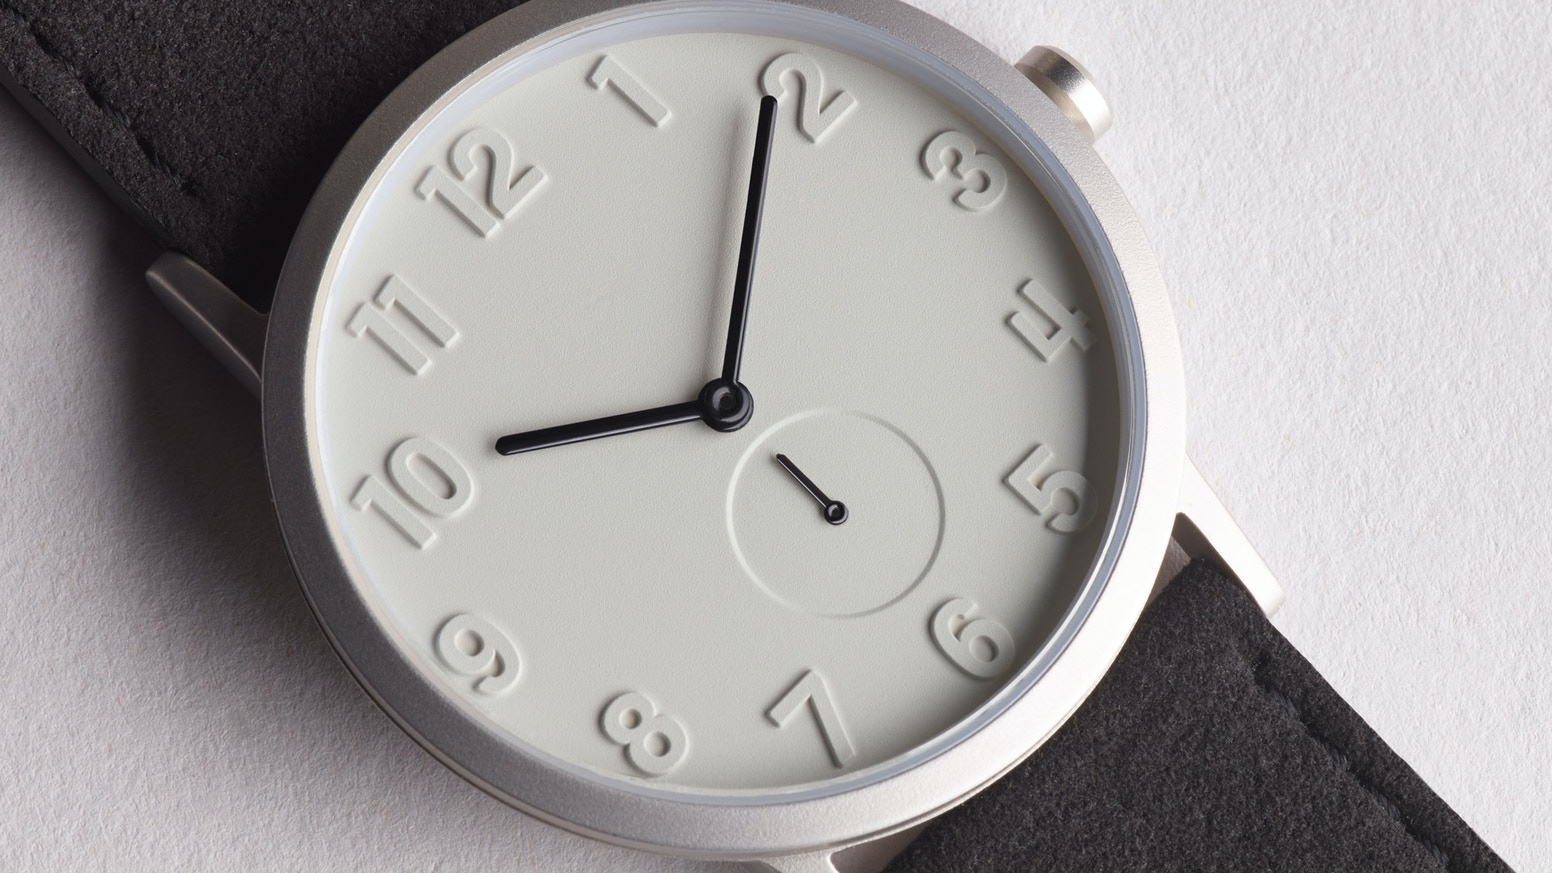 Beautifully subtle watches designed with attention to detail utilising awesome materials.